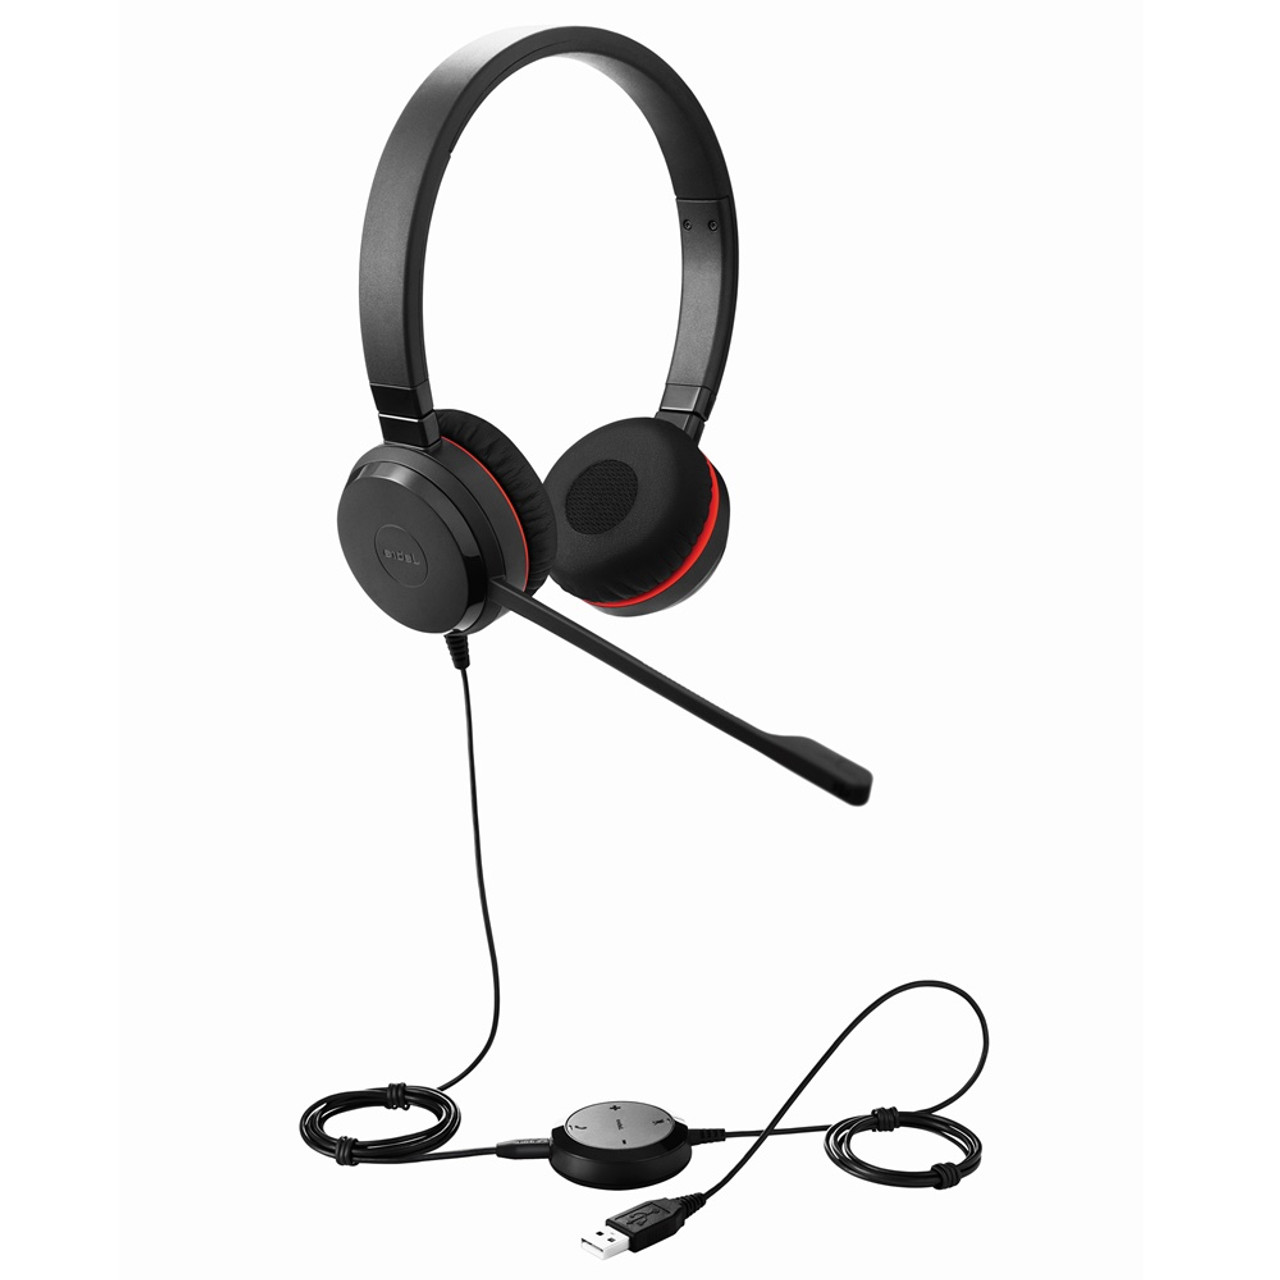 Jabra Evolve 30 Ii Uc Stereo Usb Headset Certified For Unified Communications Voip Softphones Mobile Phones And Tablets 5399 829 309